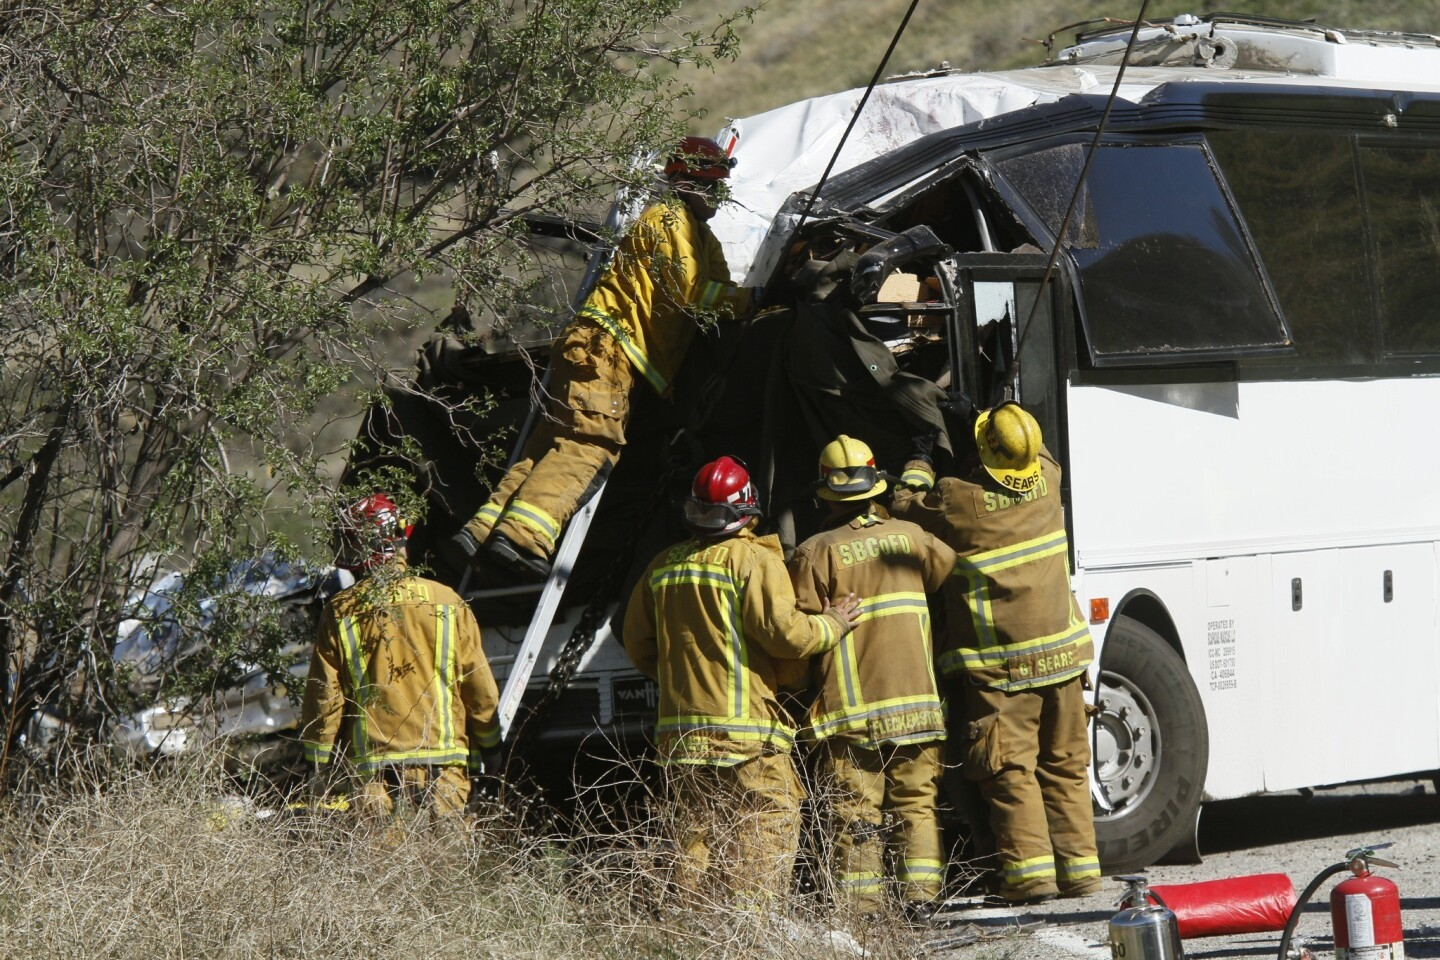 On Monday morning, investigation continues at the scene of the bus crash.